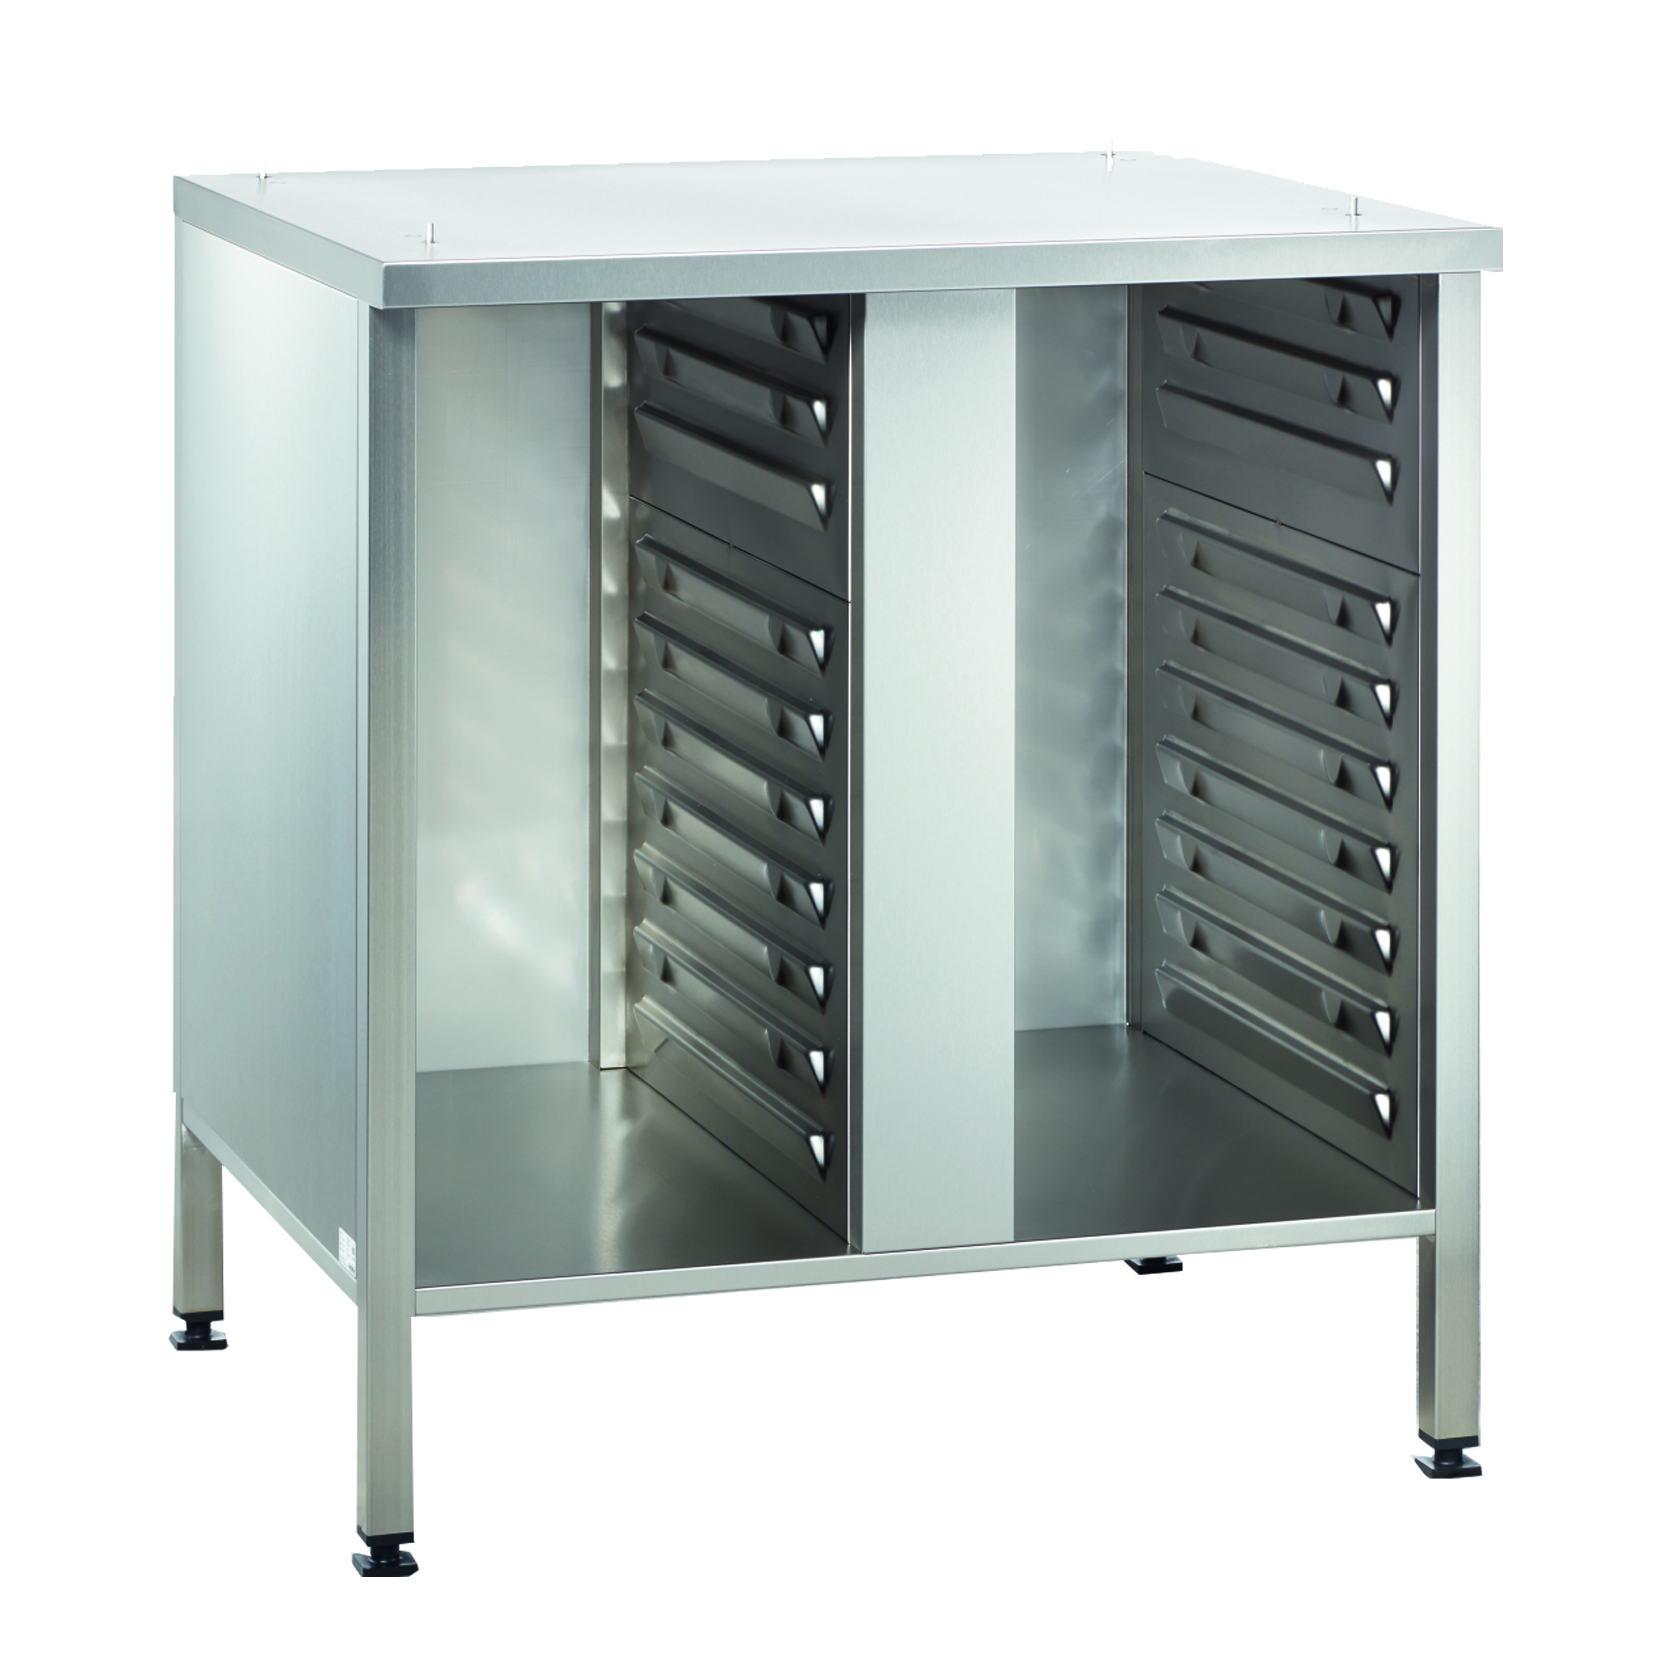 RATIONAL 60.30.337 equipment stand, oven